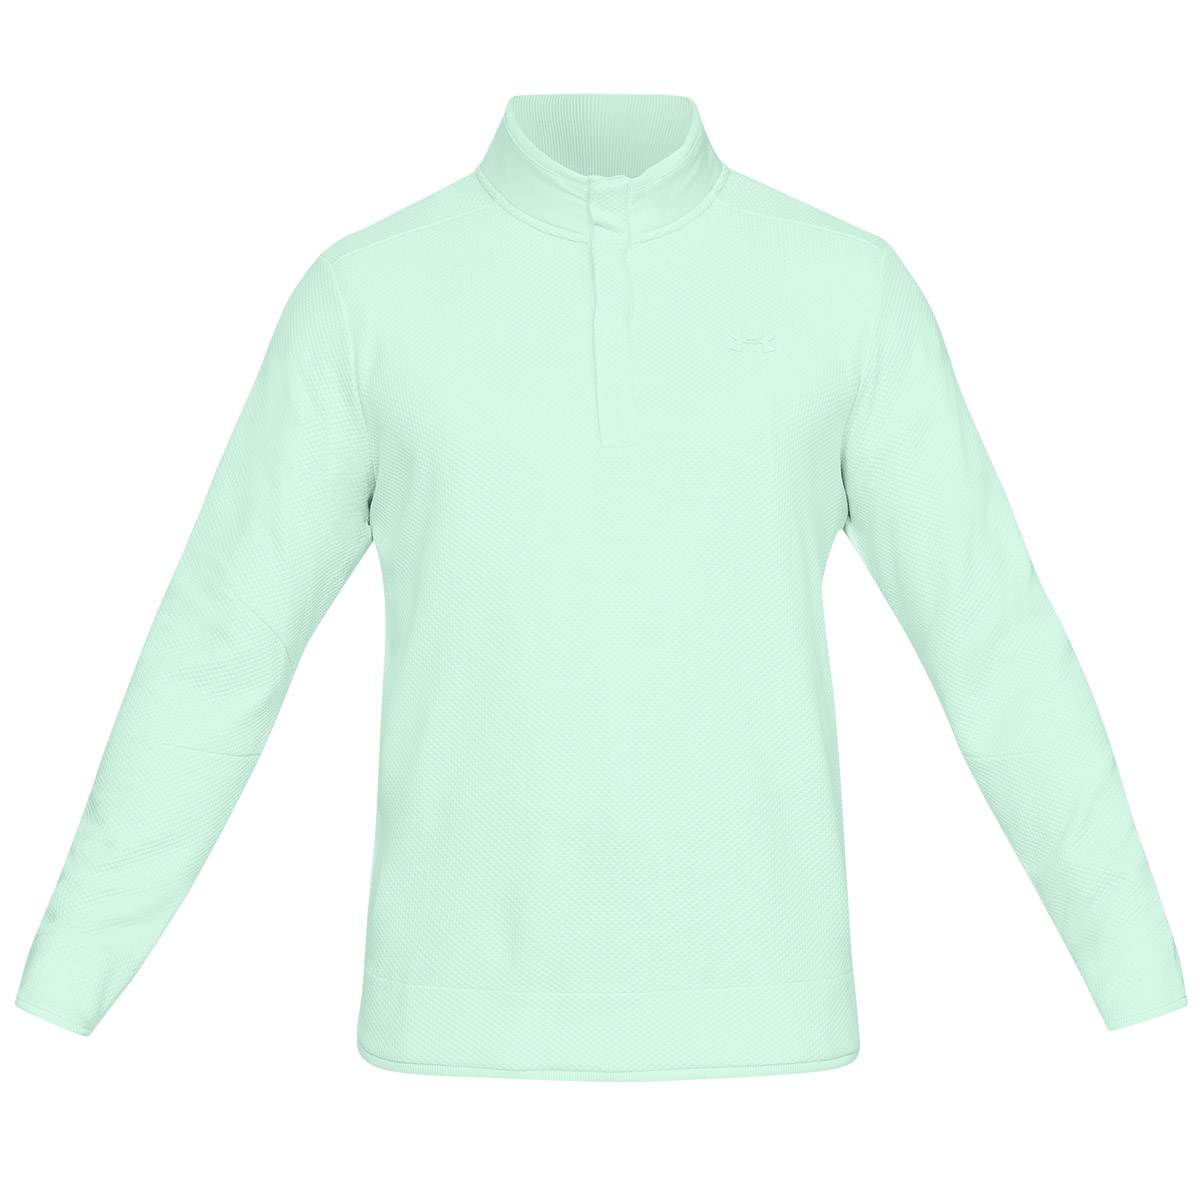 famous designer brand amazing price brand new Under Armour Storm SF Snap Mock Sweater | Online Golf